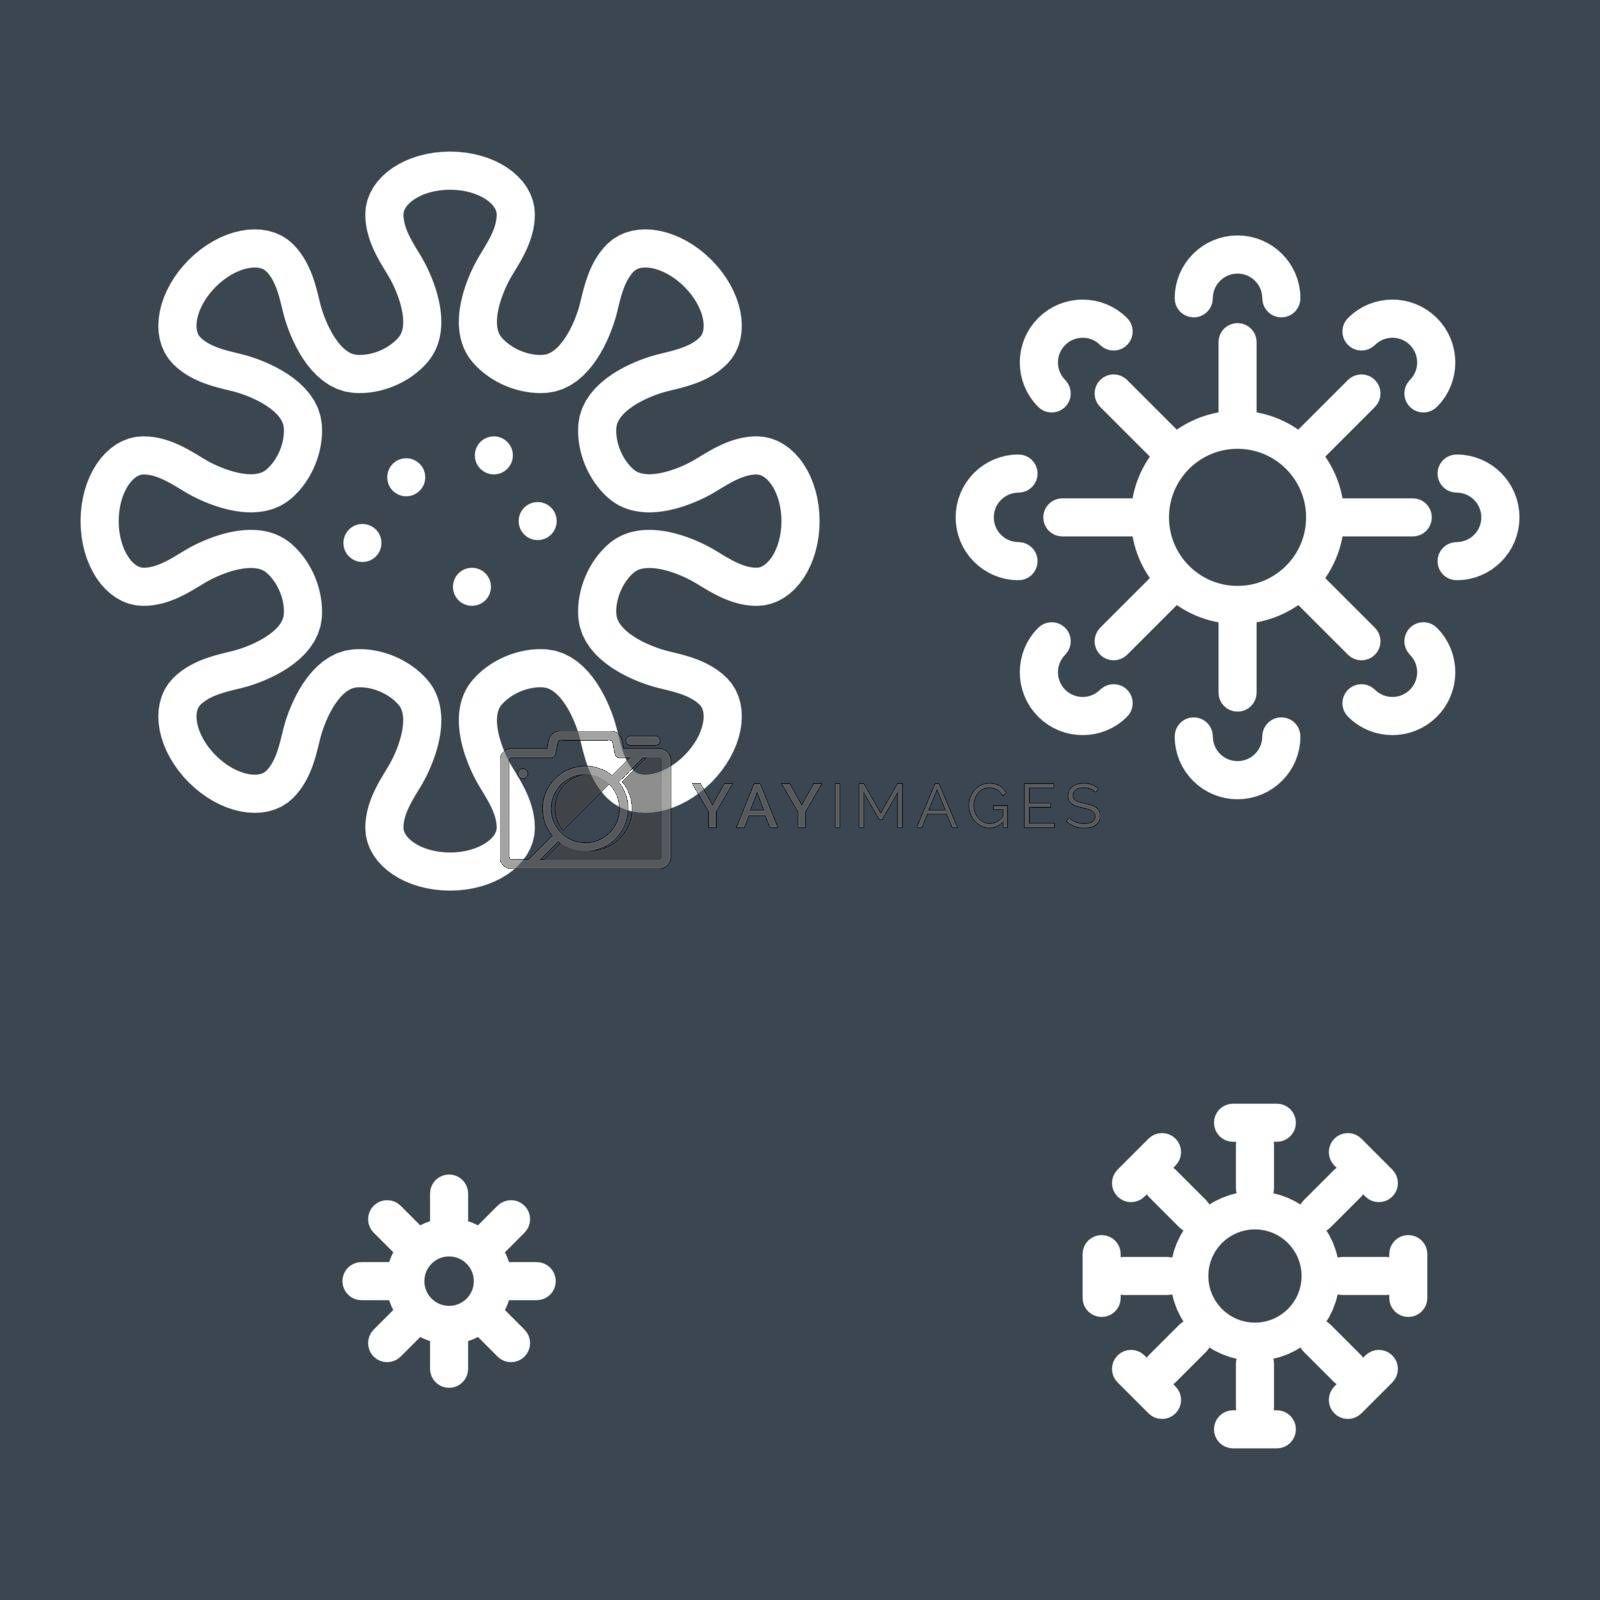 Viruses set related vector thin line icon. Isolated on black background. Editable stroke. Vector illustration.